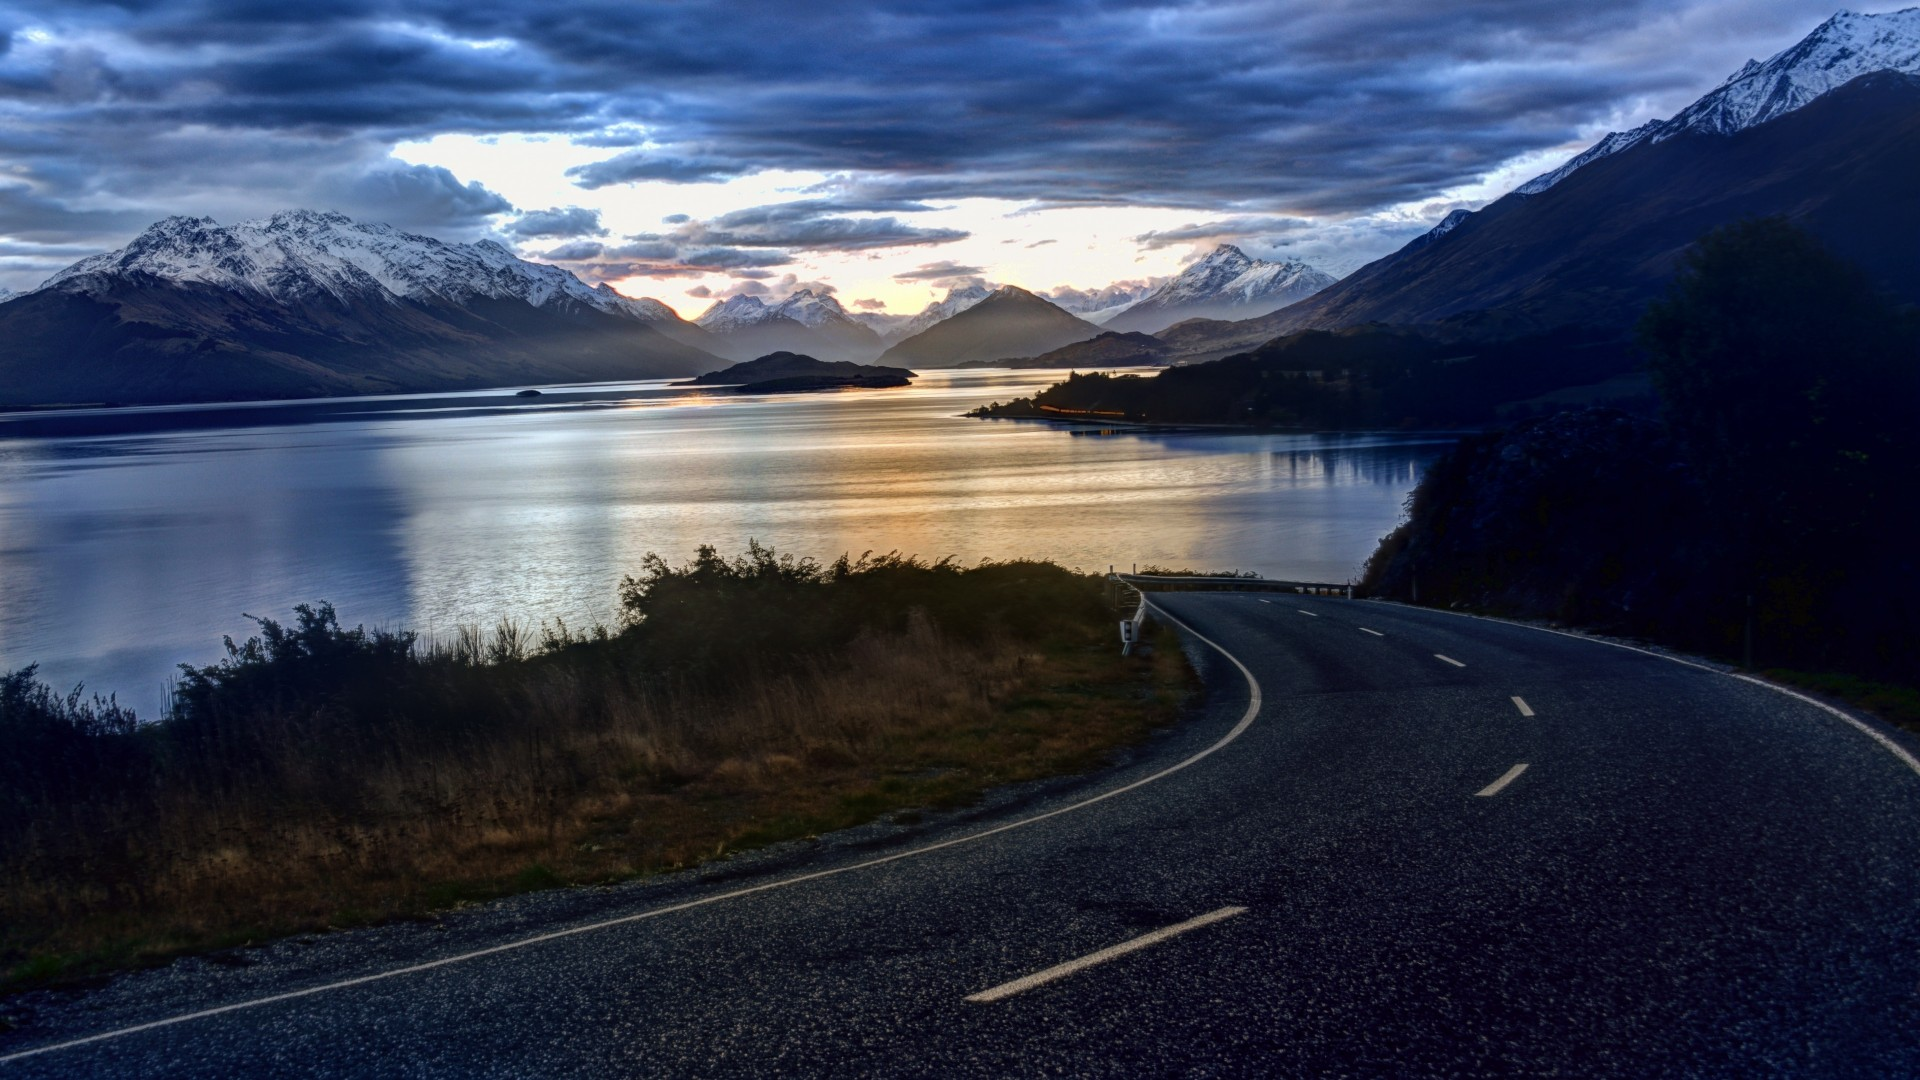 New Zealand, 4k, HD wallpaper, nature, sky, clouds, lake, road, landscape, water, mountain (horizontal)